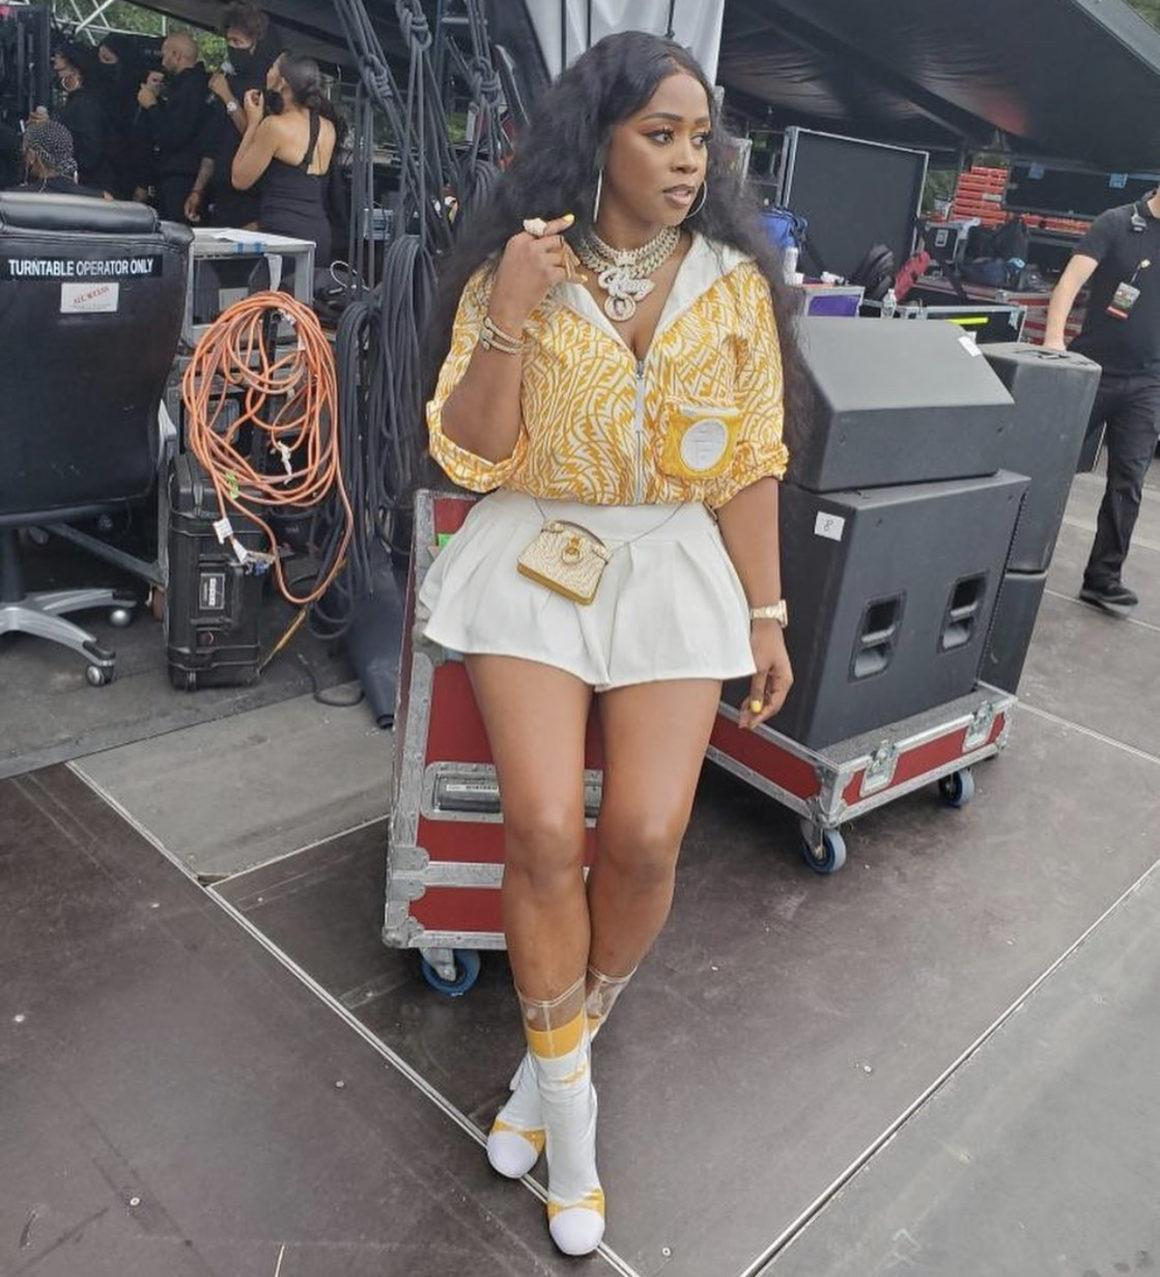 Remy Ma Performs at 'We Love NYC' Concert Wearing Fendi Yellow and White Logo Jacket, Purse, and Socks Paired With Ms. Bling Pleated White Mini Skirt and Chanel PVC Boots